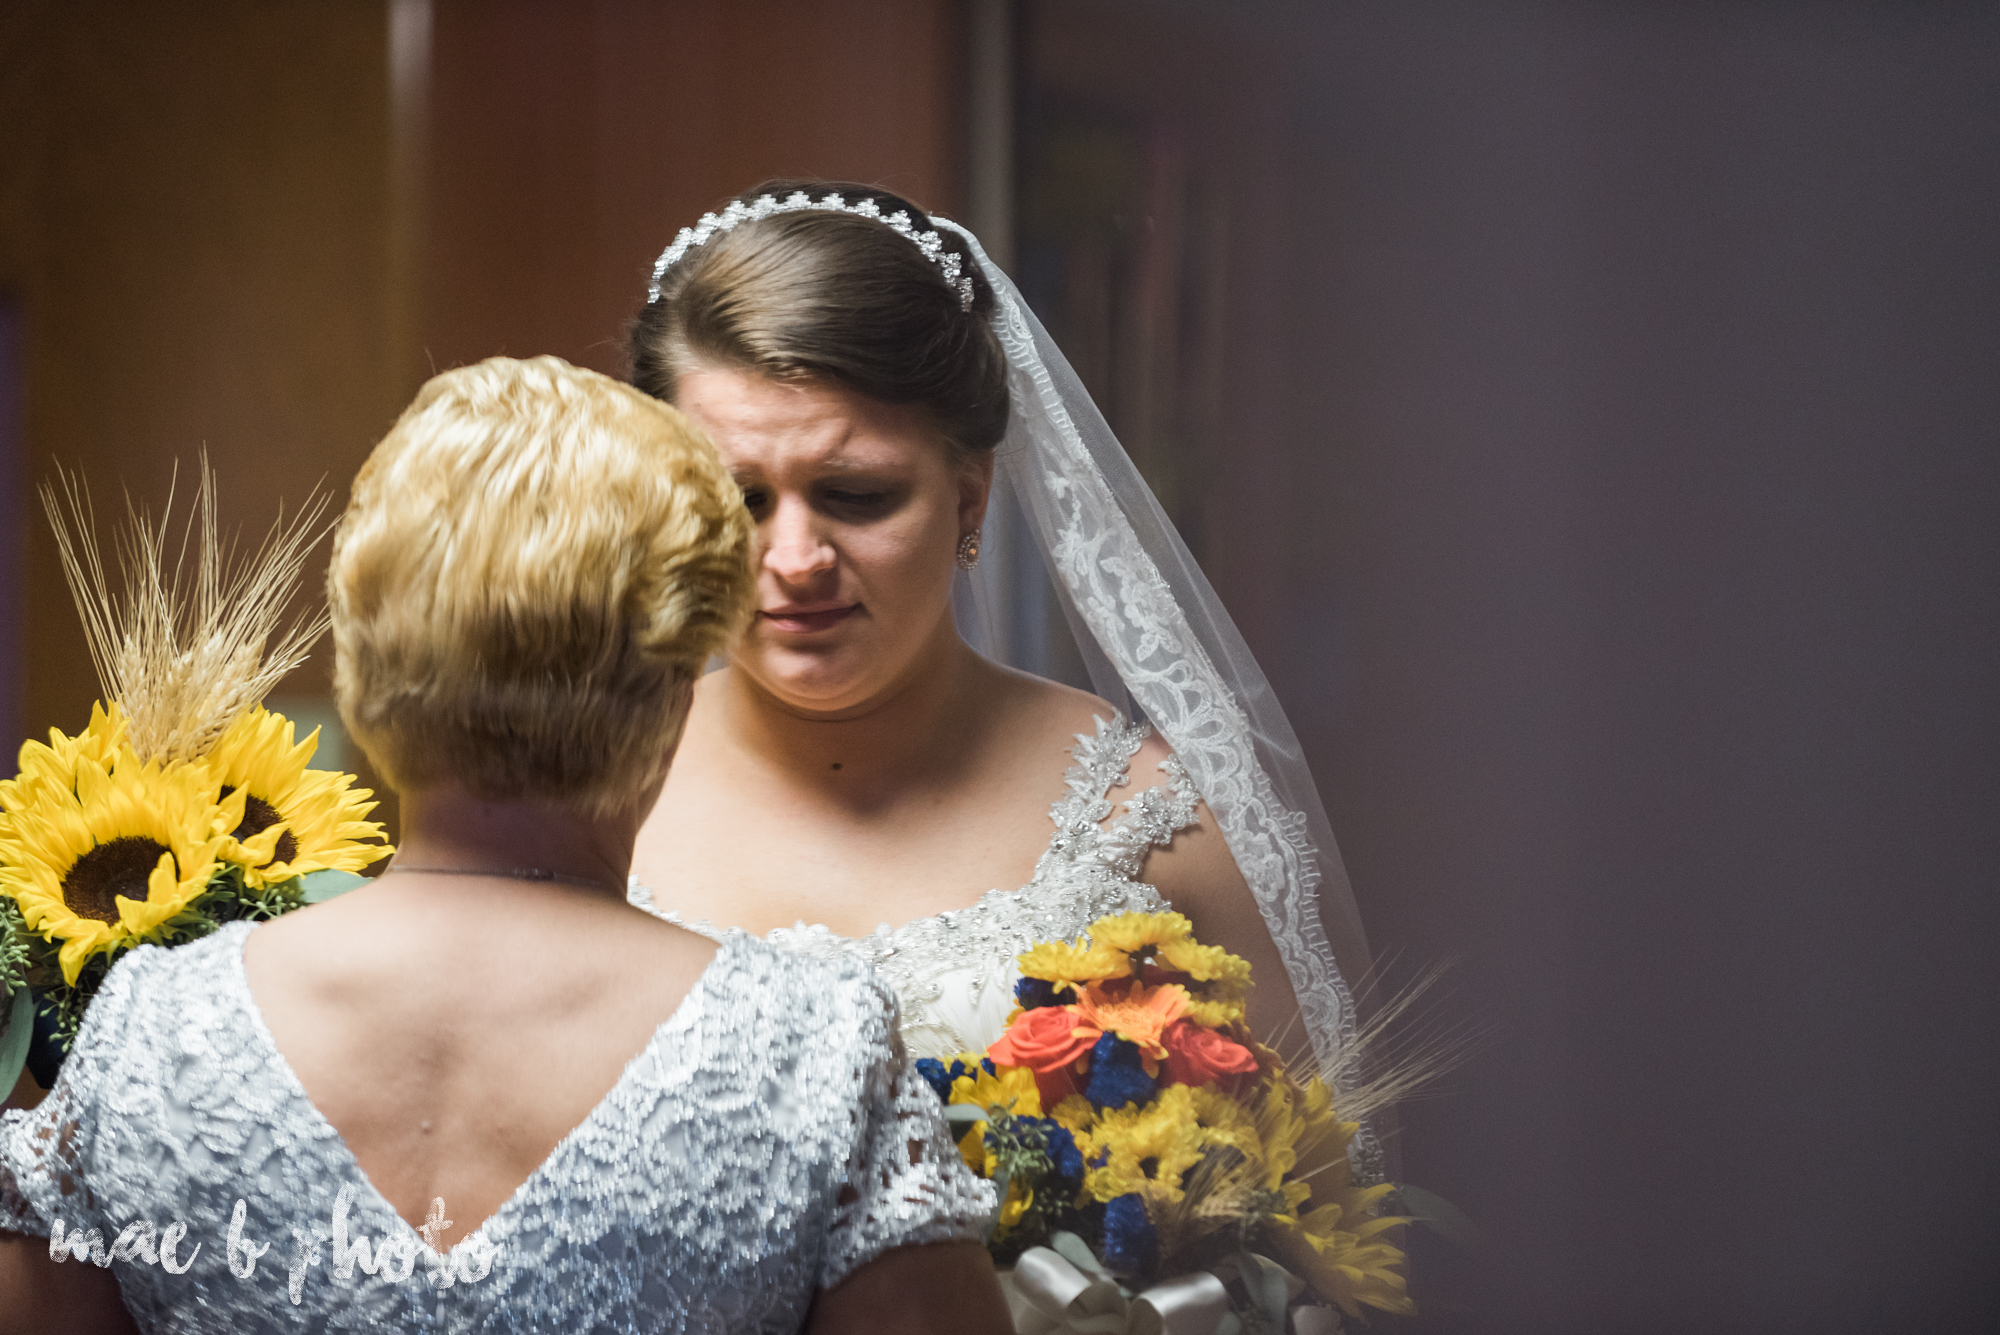 kaylynn & matt's fall zoo wedding at the cleveland metroparks zoo in cleveland ohio photographed by mae b photo-1.jpg